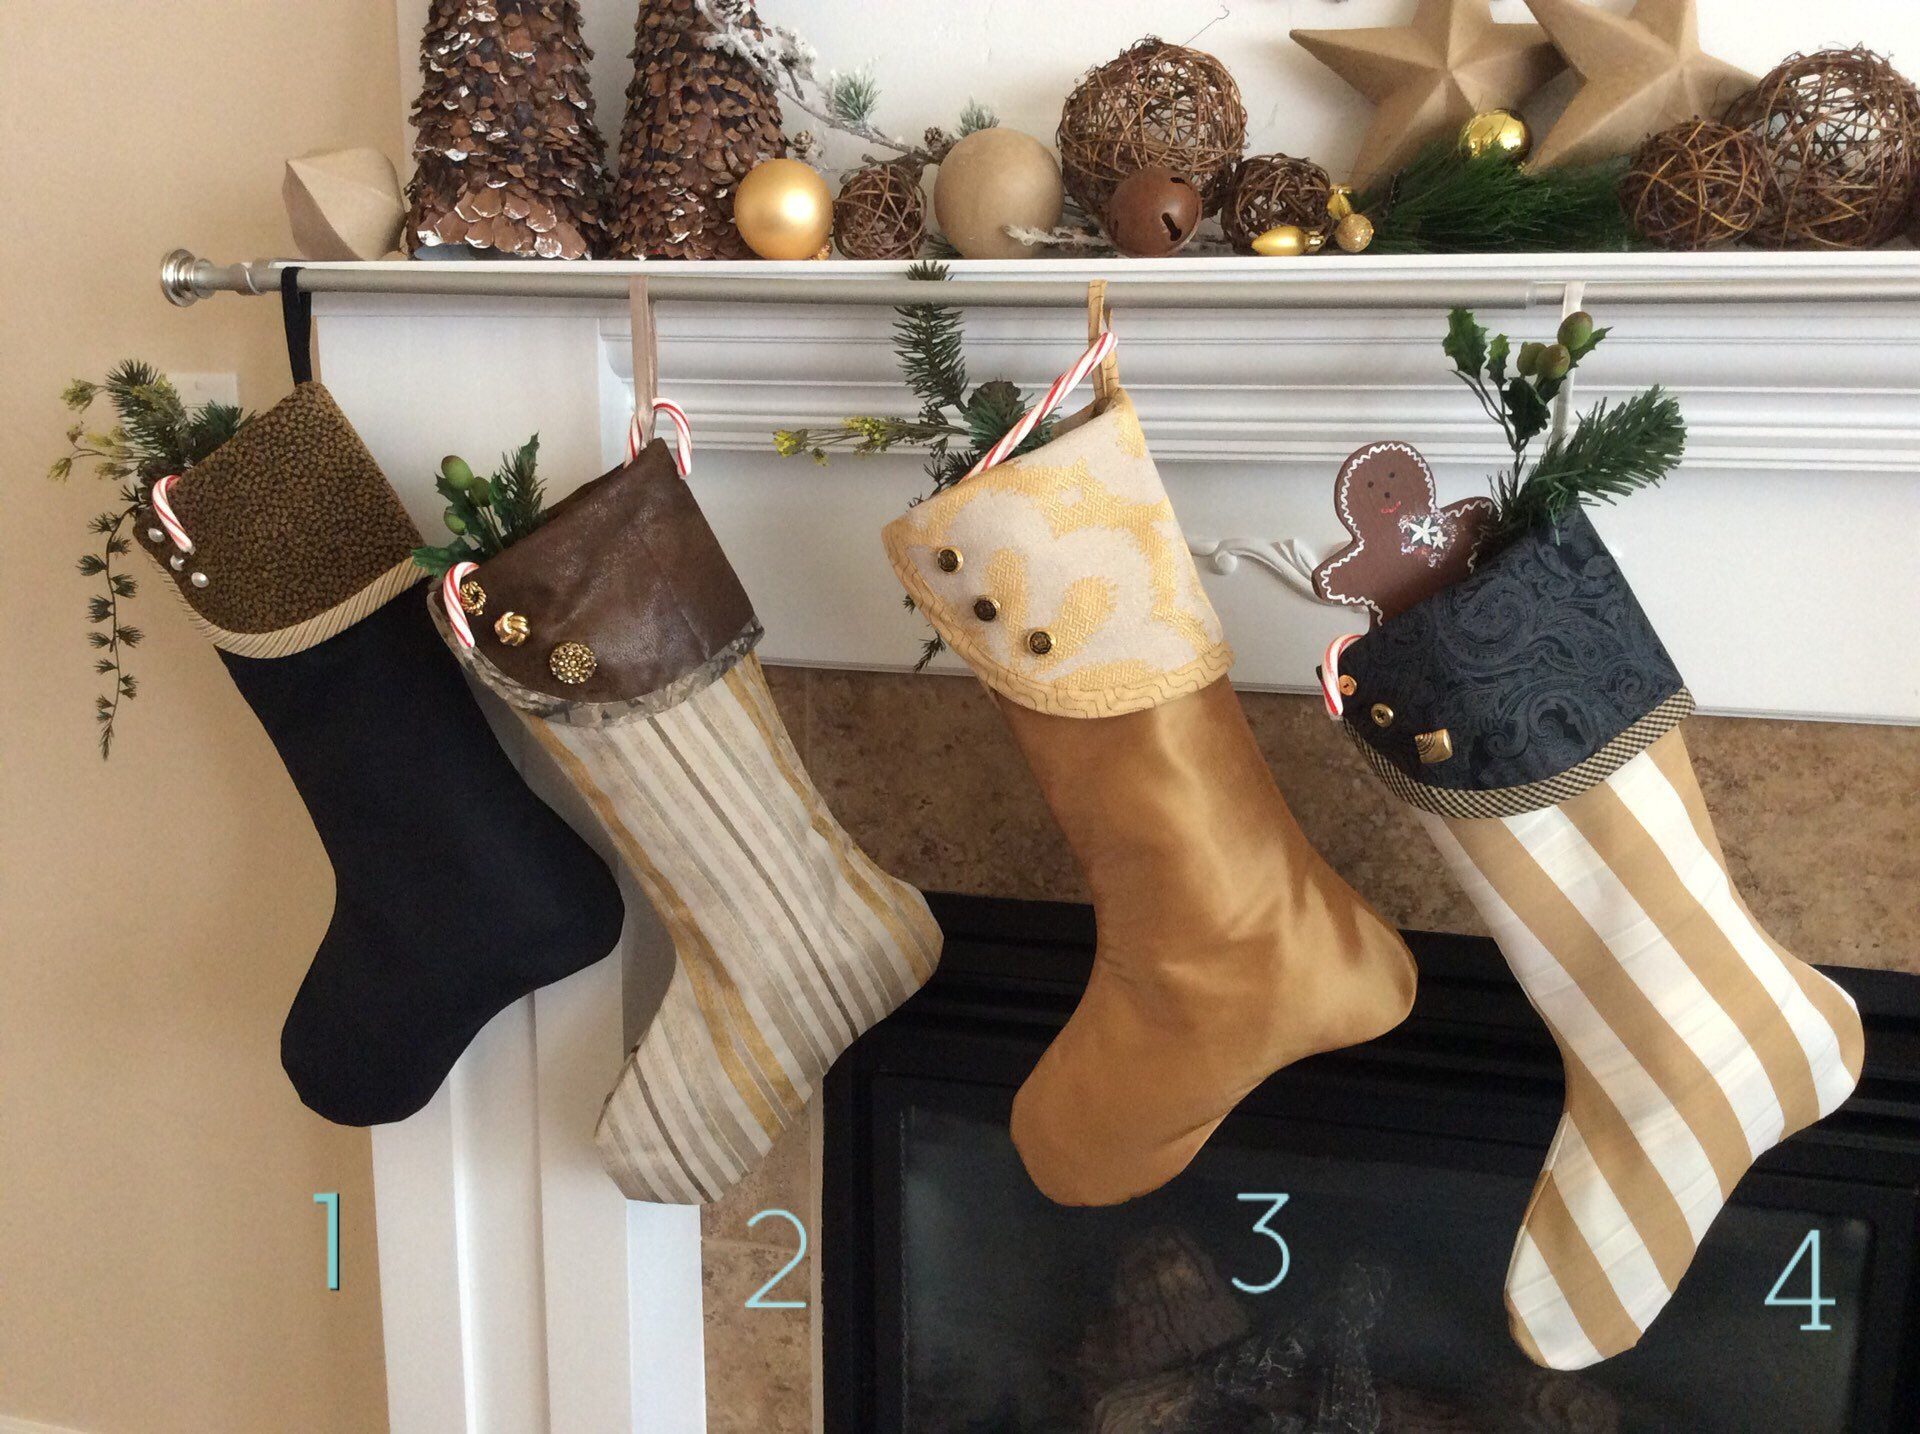 Gold and Black Christmas Stockings Modern Stockings Fireplace